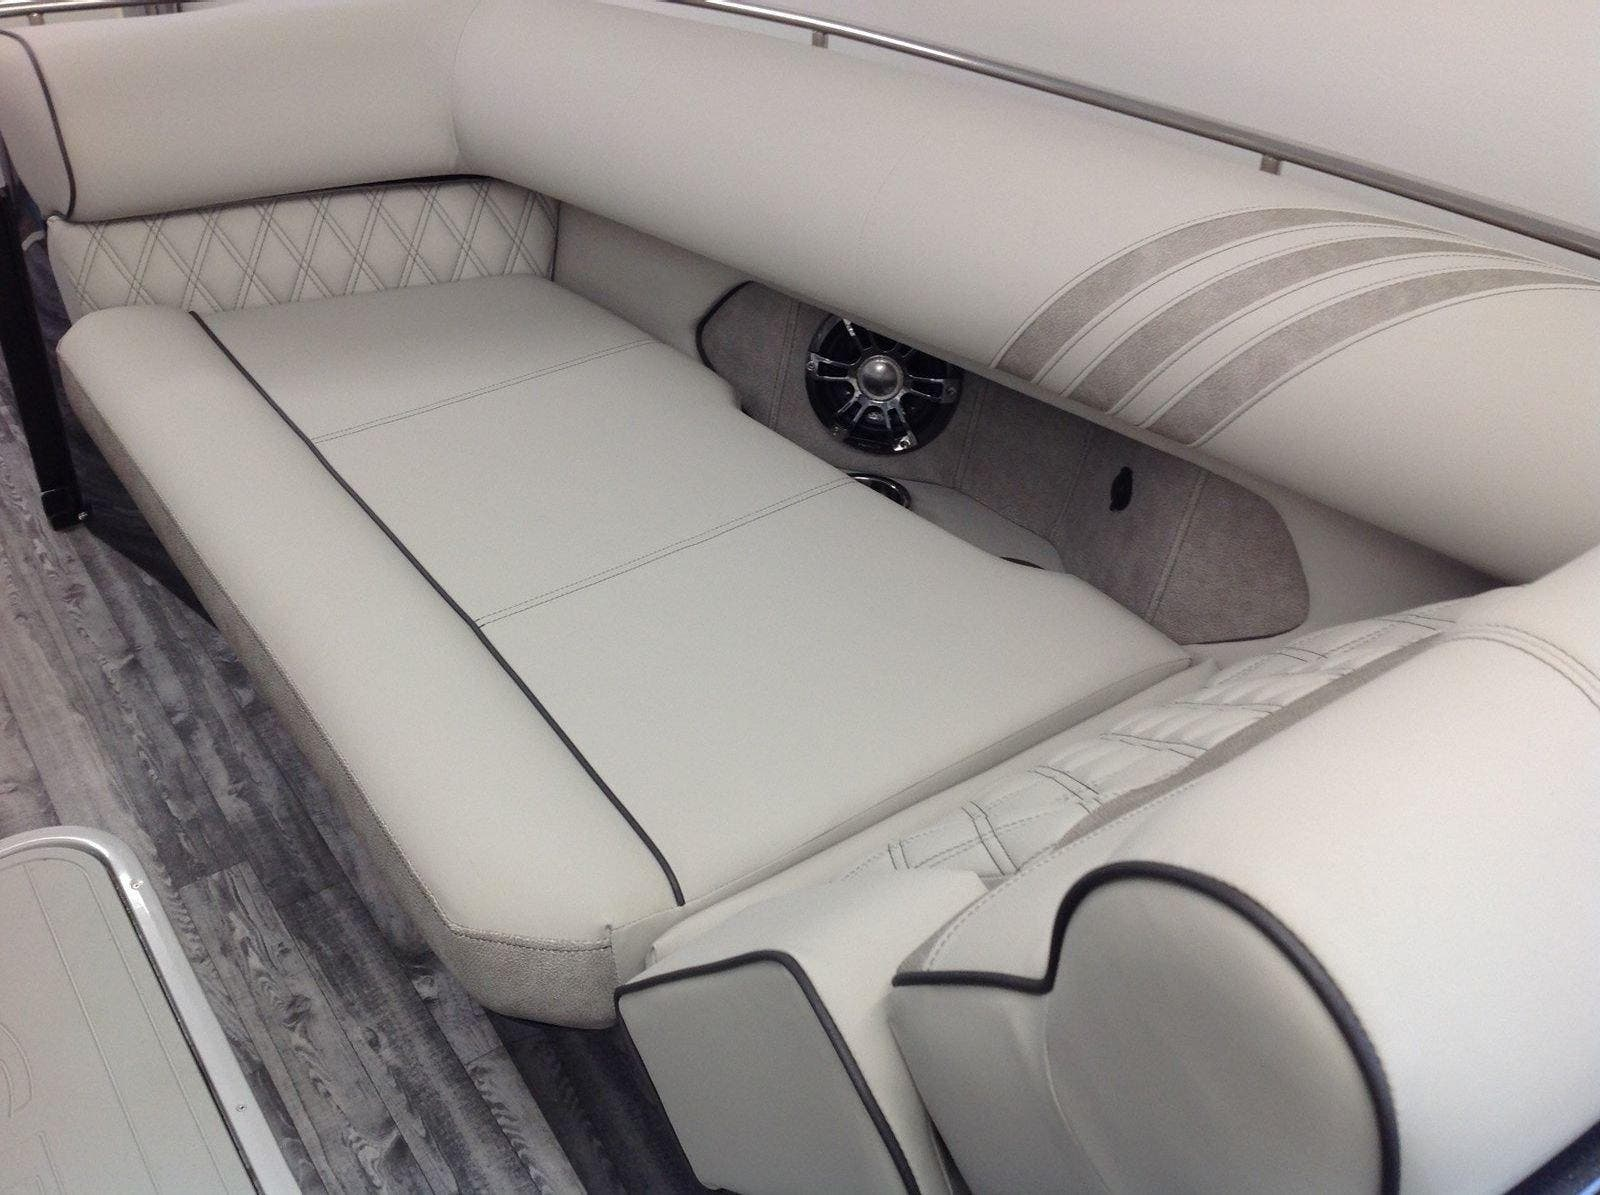 2020 Crest boat for sale, model of the boat is Continental 270sls & Image # 10 of 15